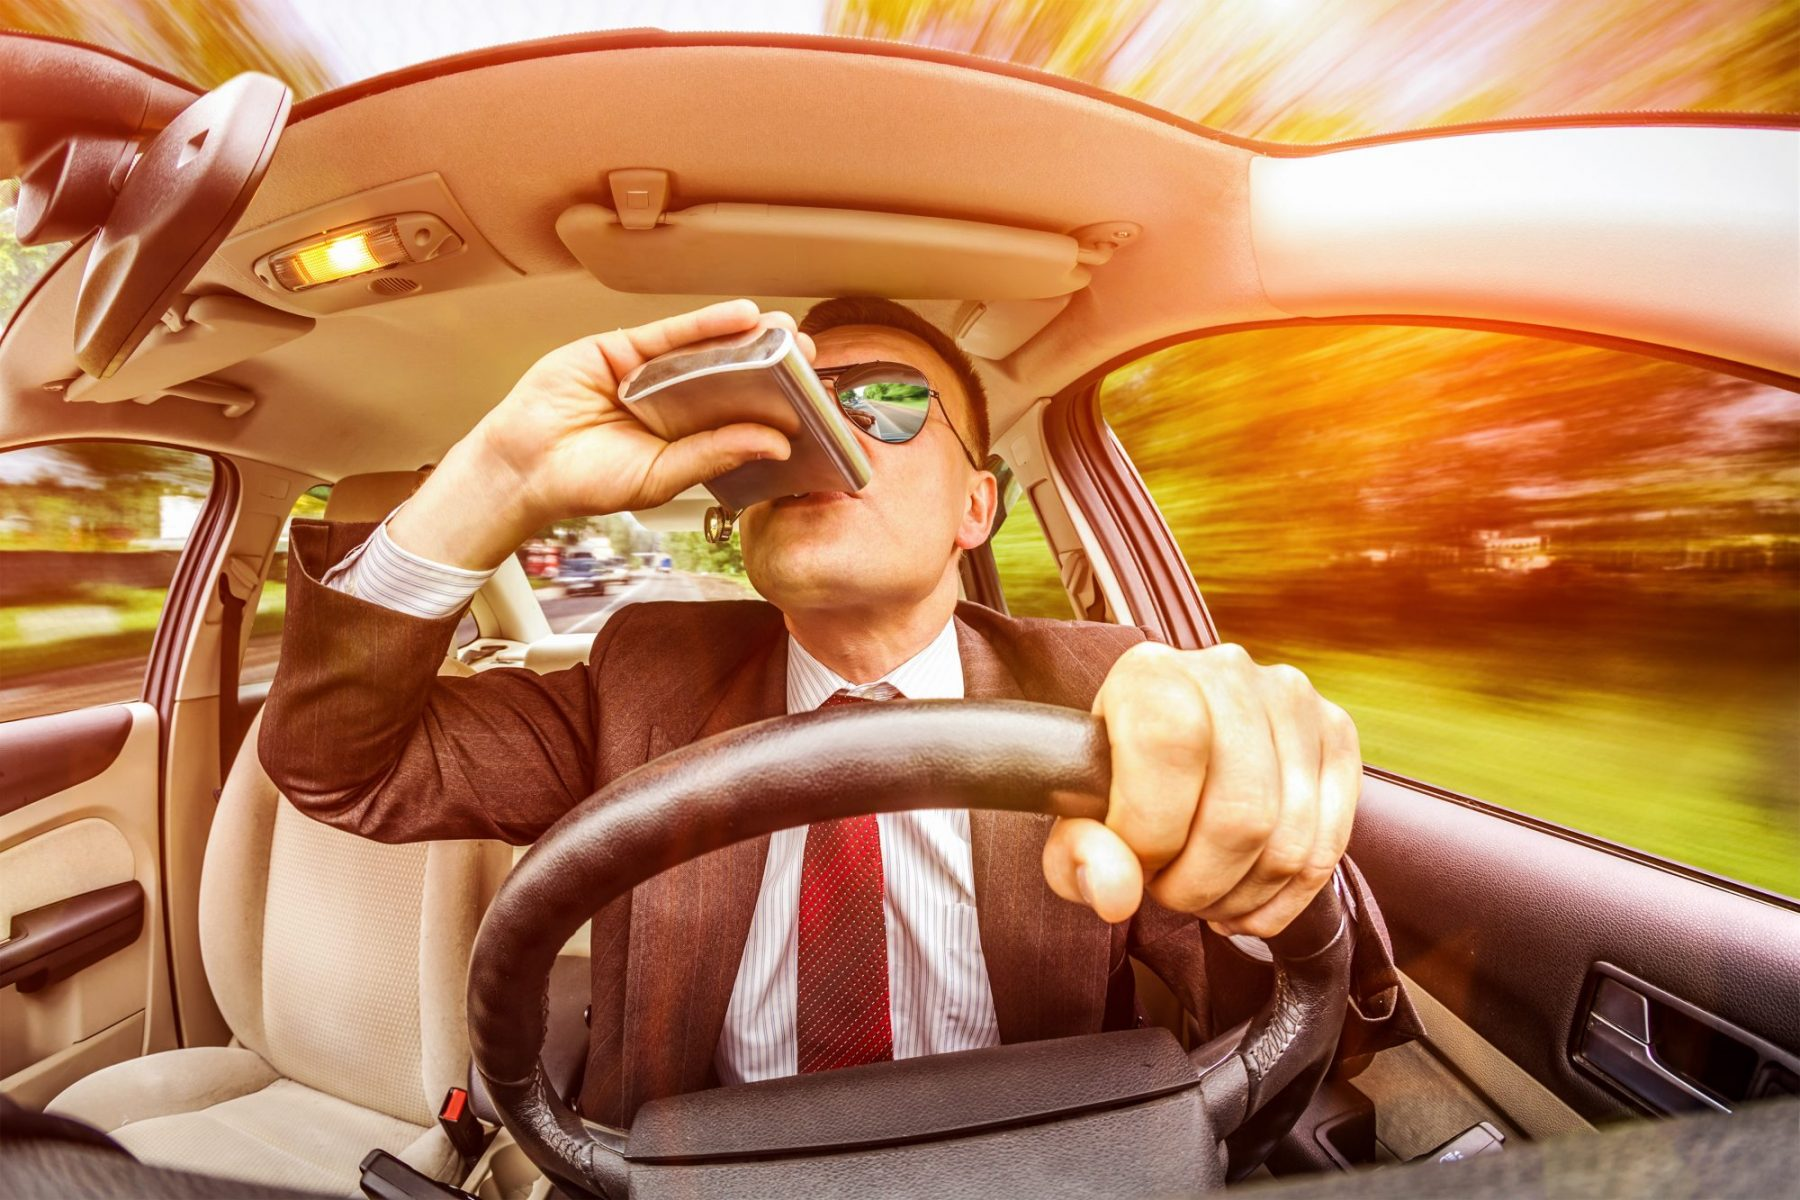 A man drinking from a flask while driving and getting an OVI, he needs a good Grand Rapids DUI Lawyer.